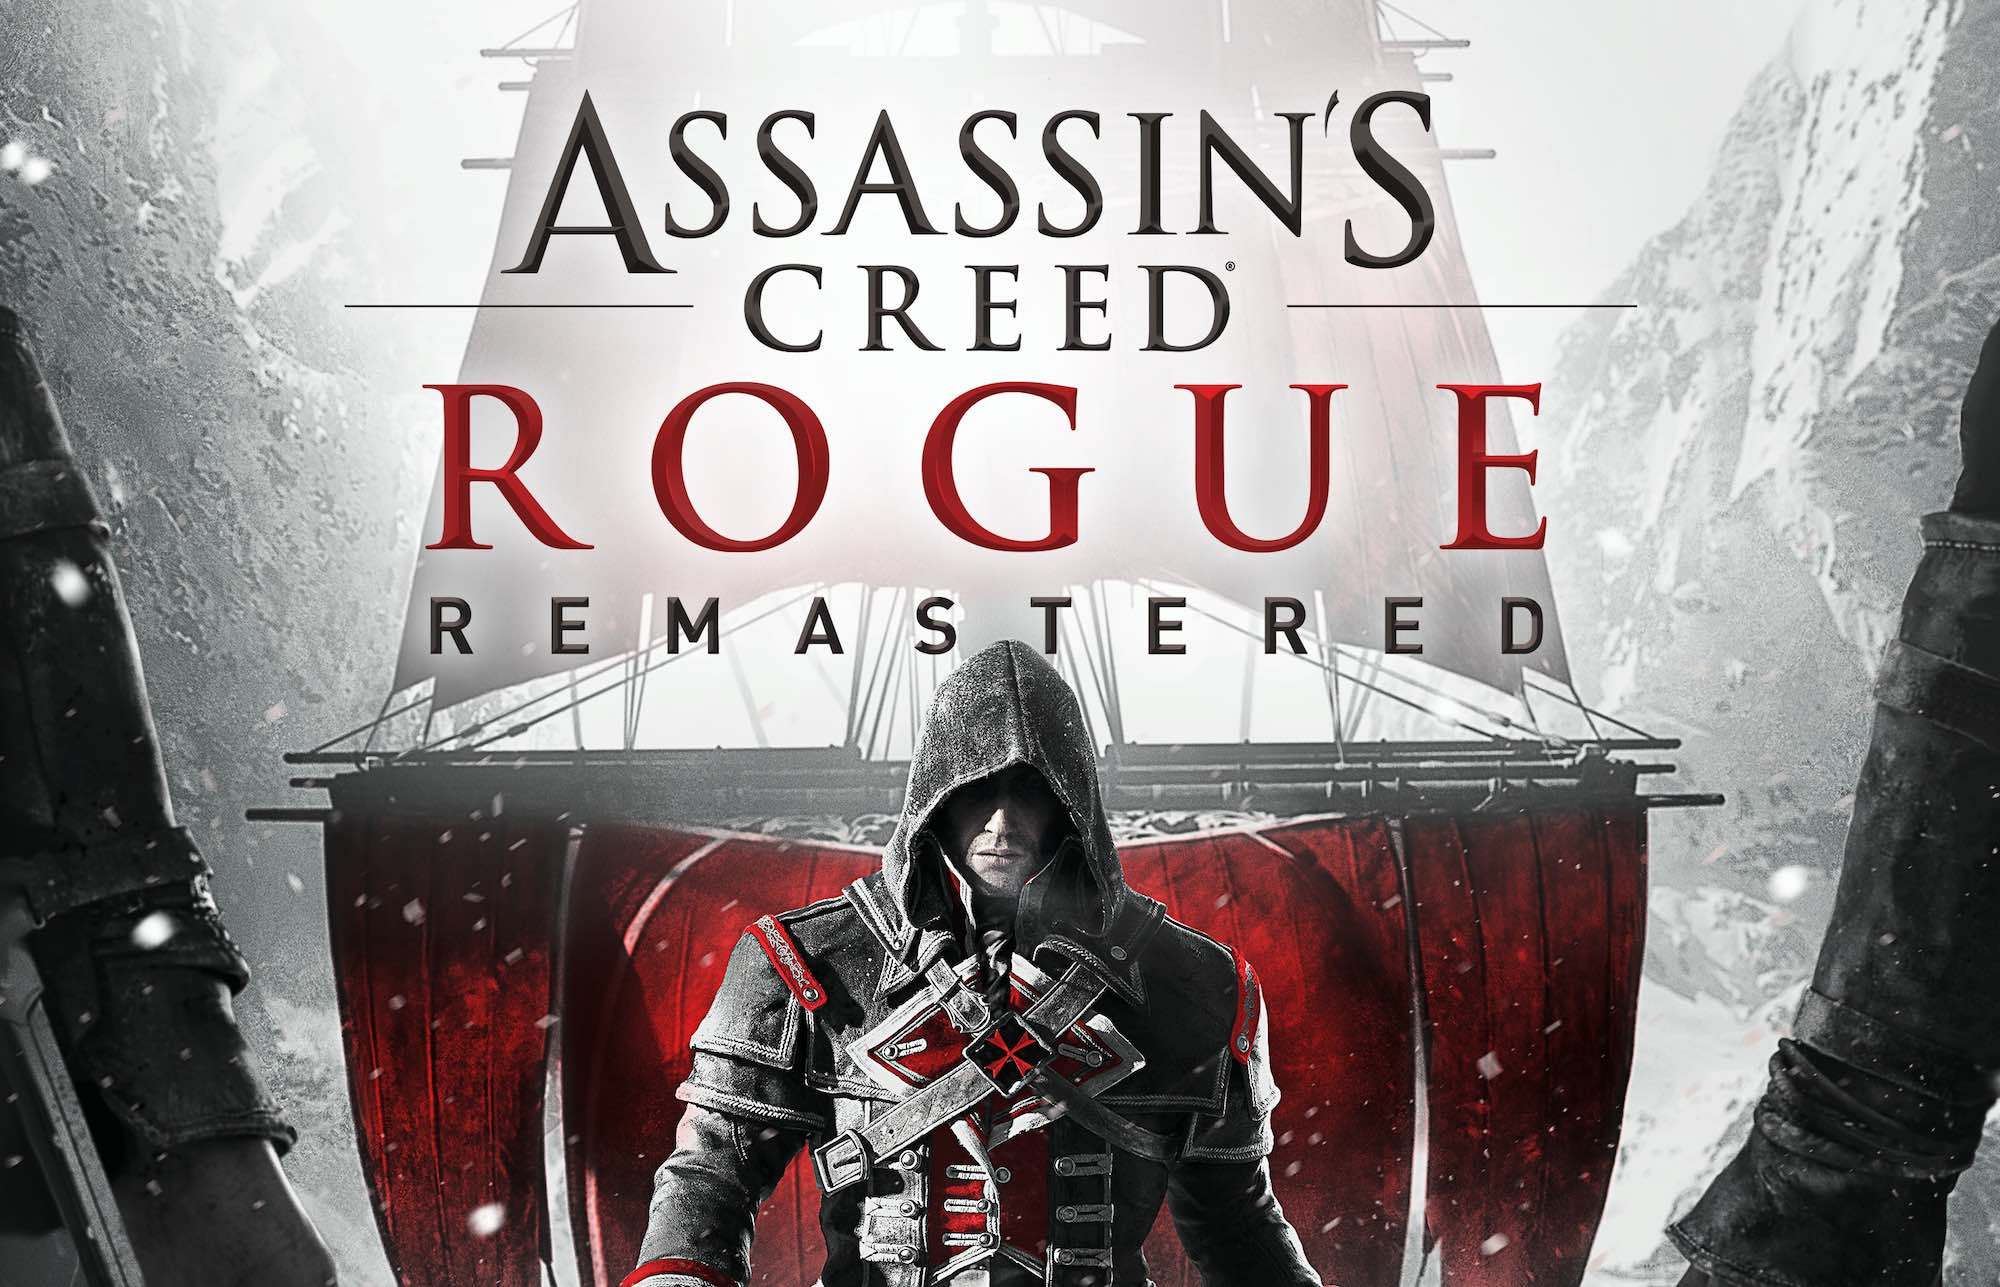 Assassin's Creed Rogue Remastered sails for console